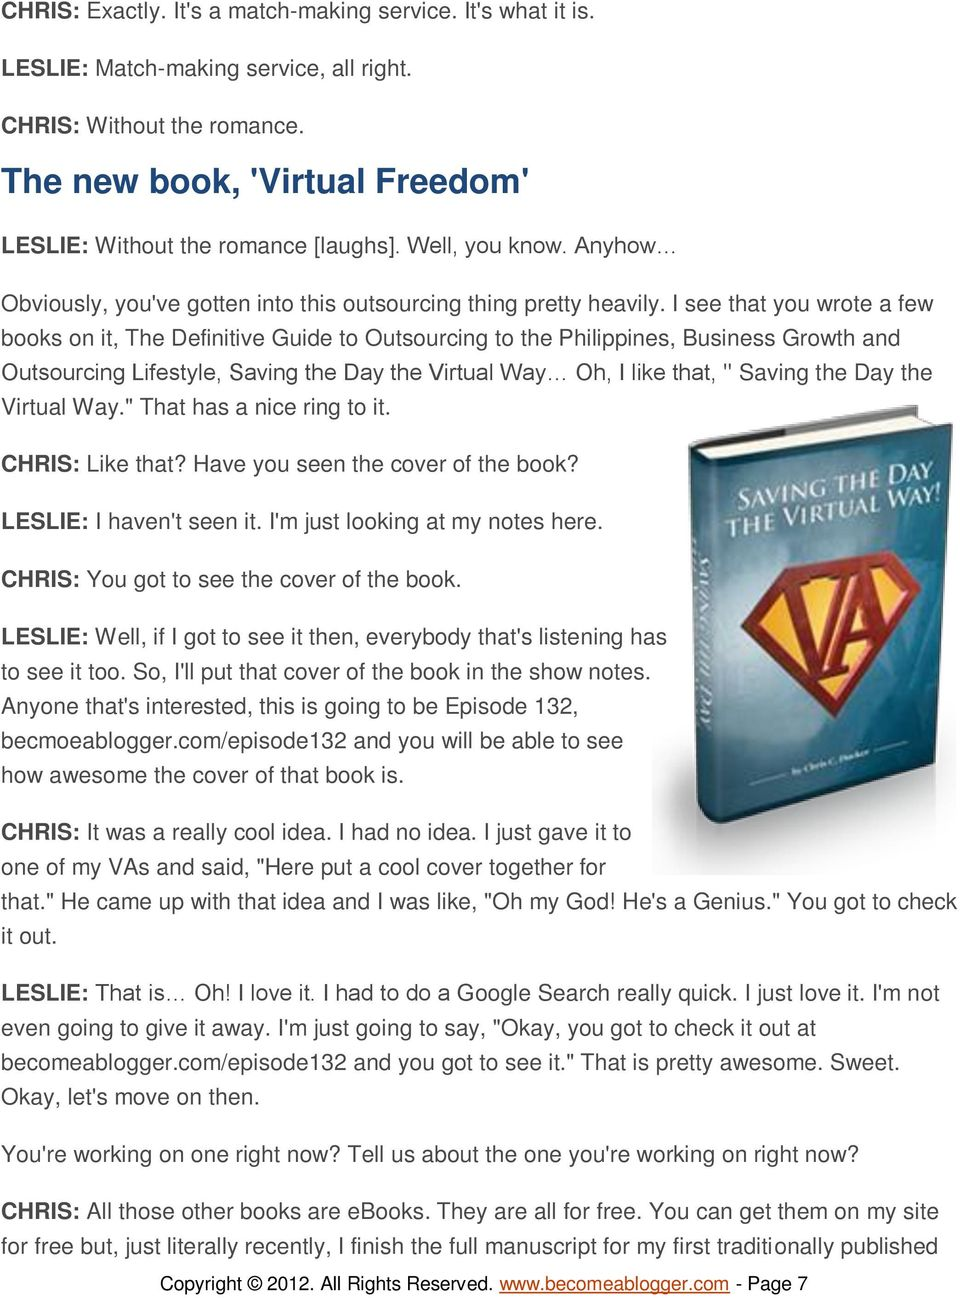 "I see that you wrote a few books on it, The Definitive Guide to Outsourcing to the Philippines, Business Growth and Outsourcing Lifestyle, Saving the Day the Virtual Way Oh, I like that, "" Saving the"